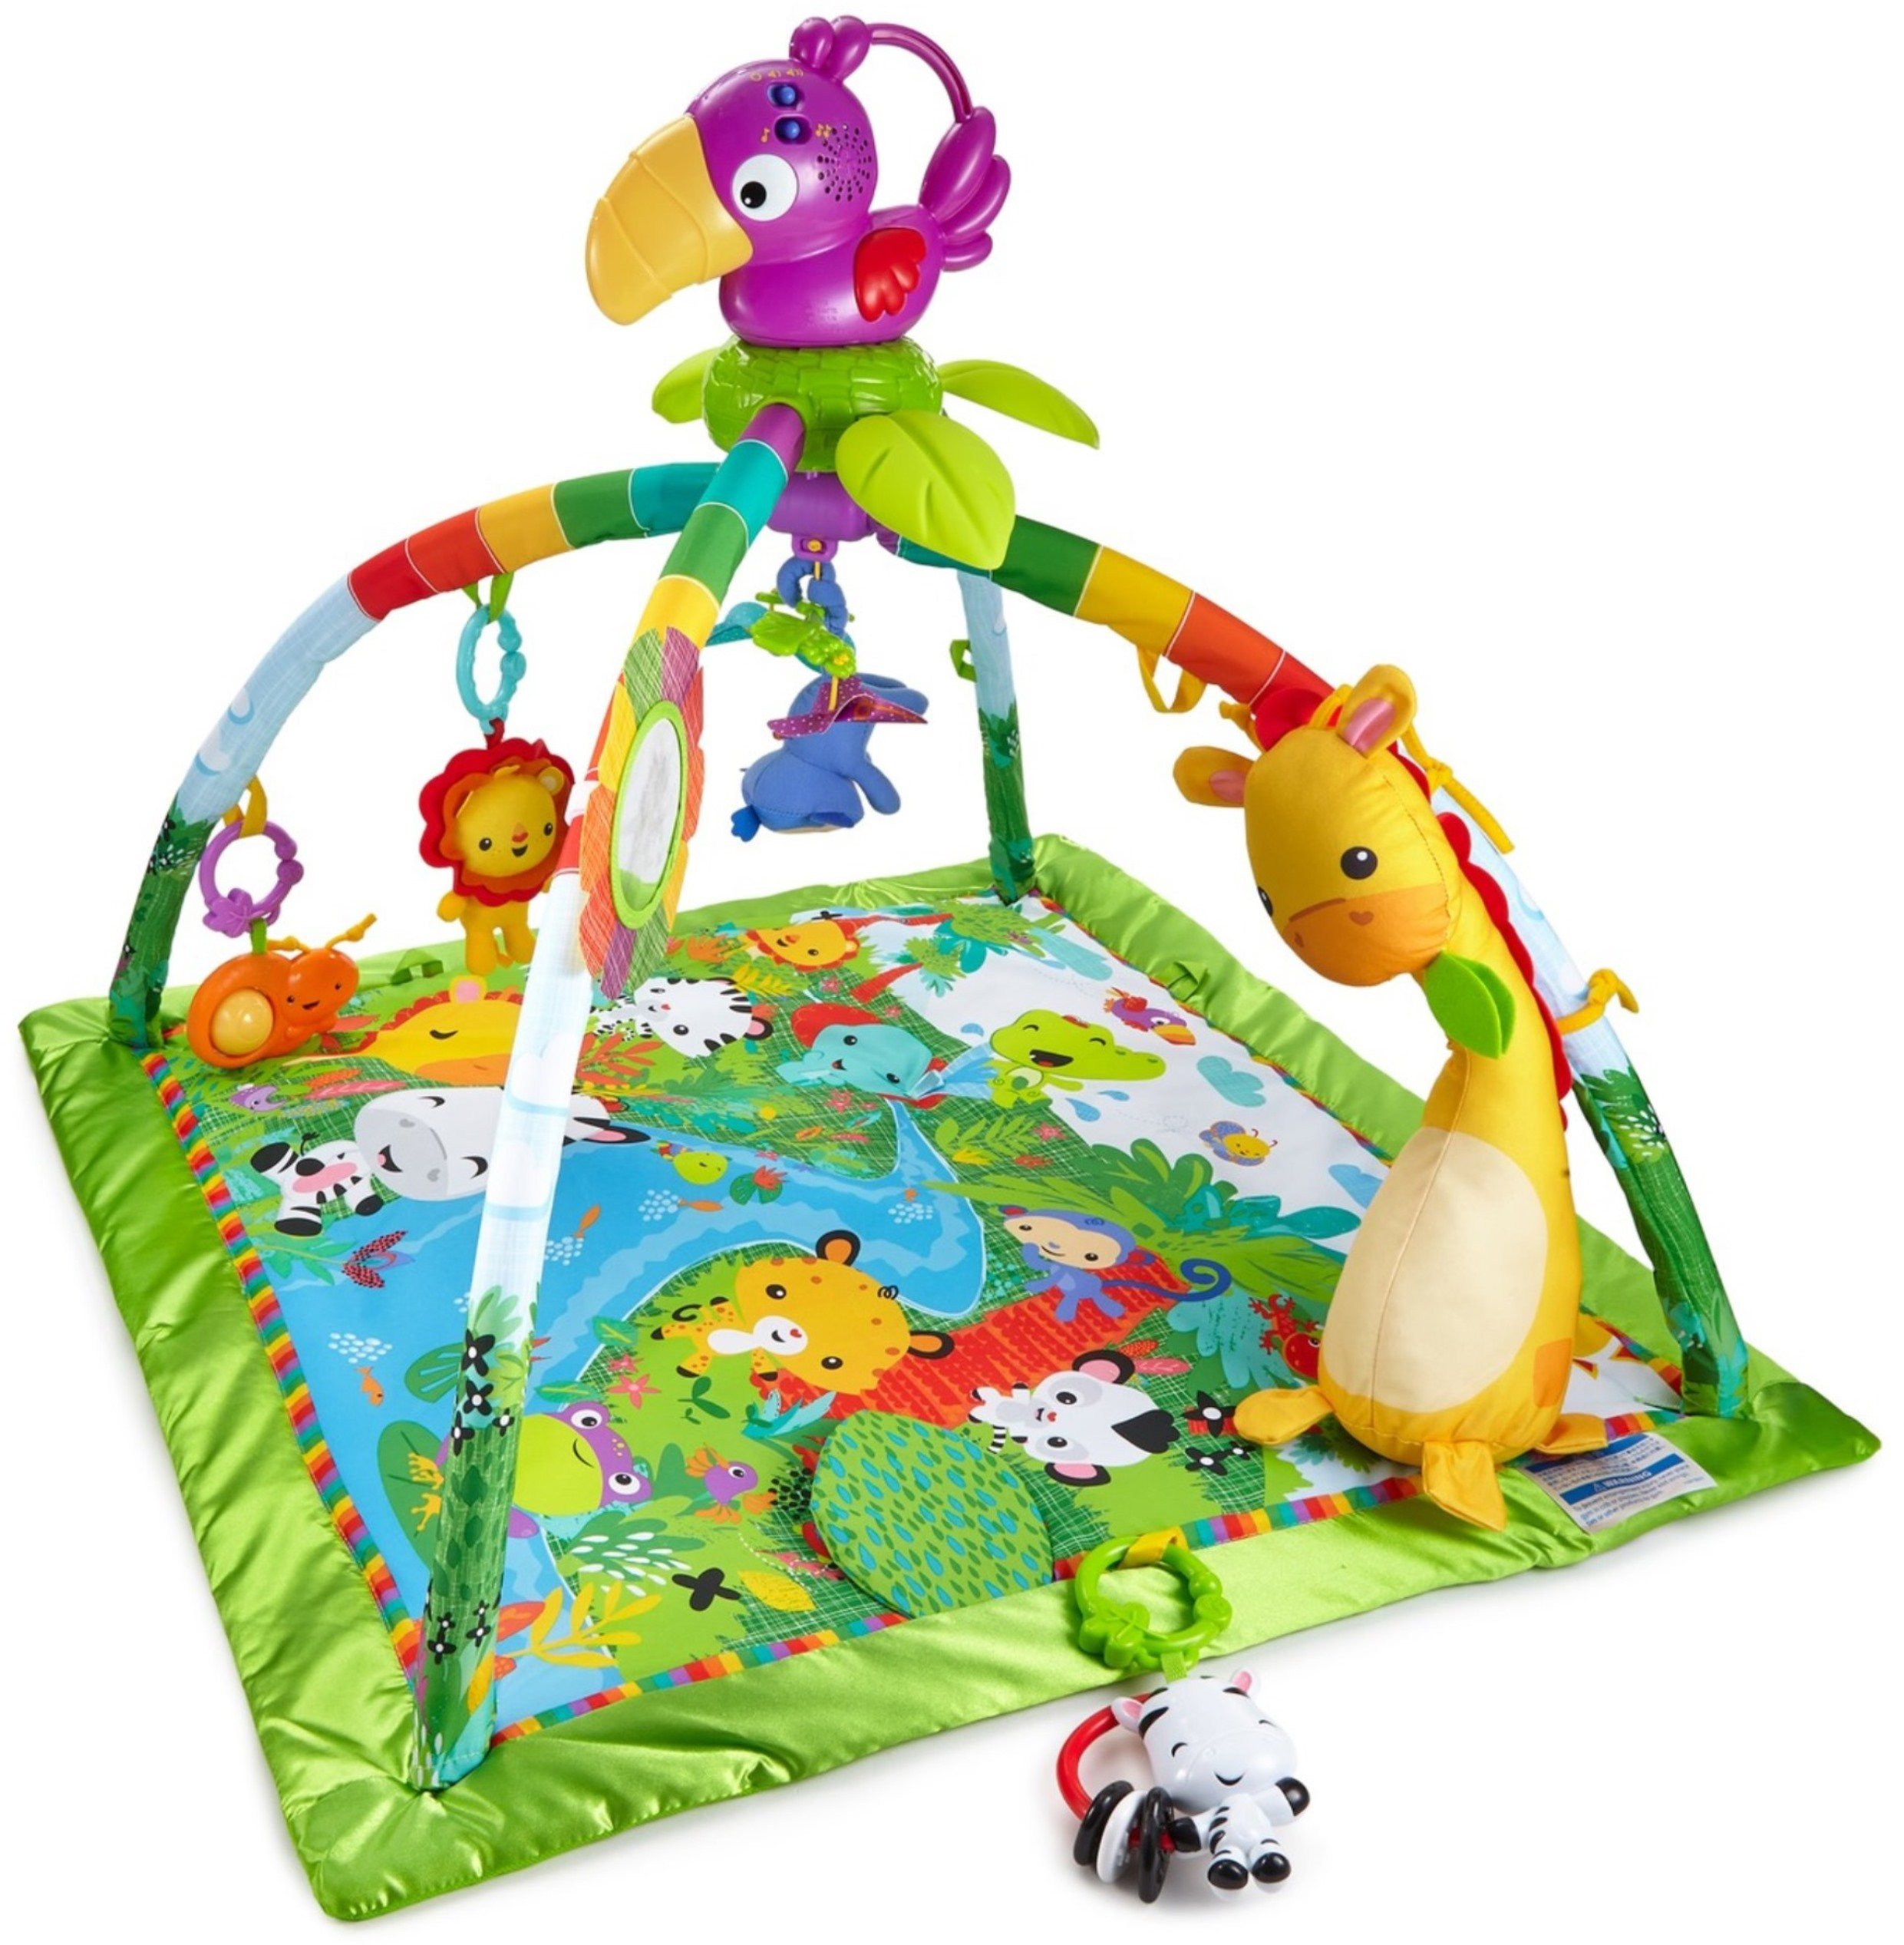 Fisher-Price Music & Lights Deluxe Gym, Rainforest